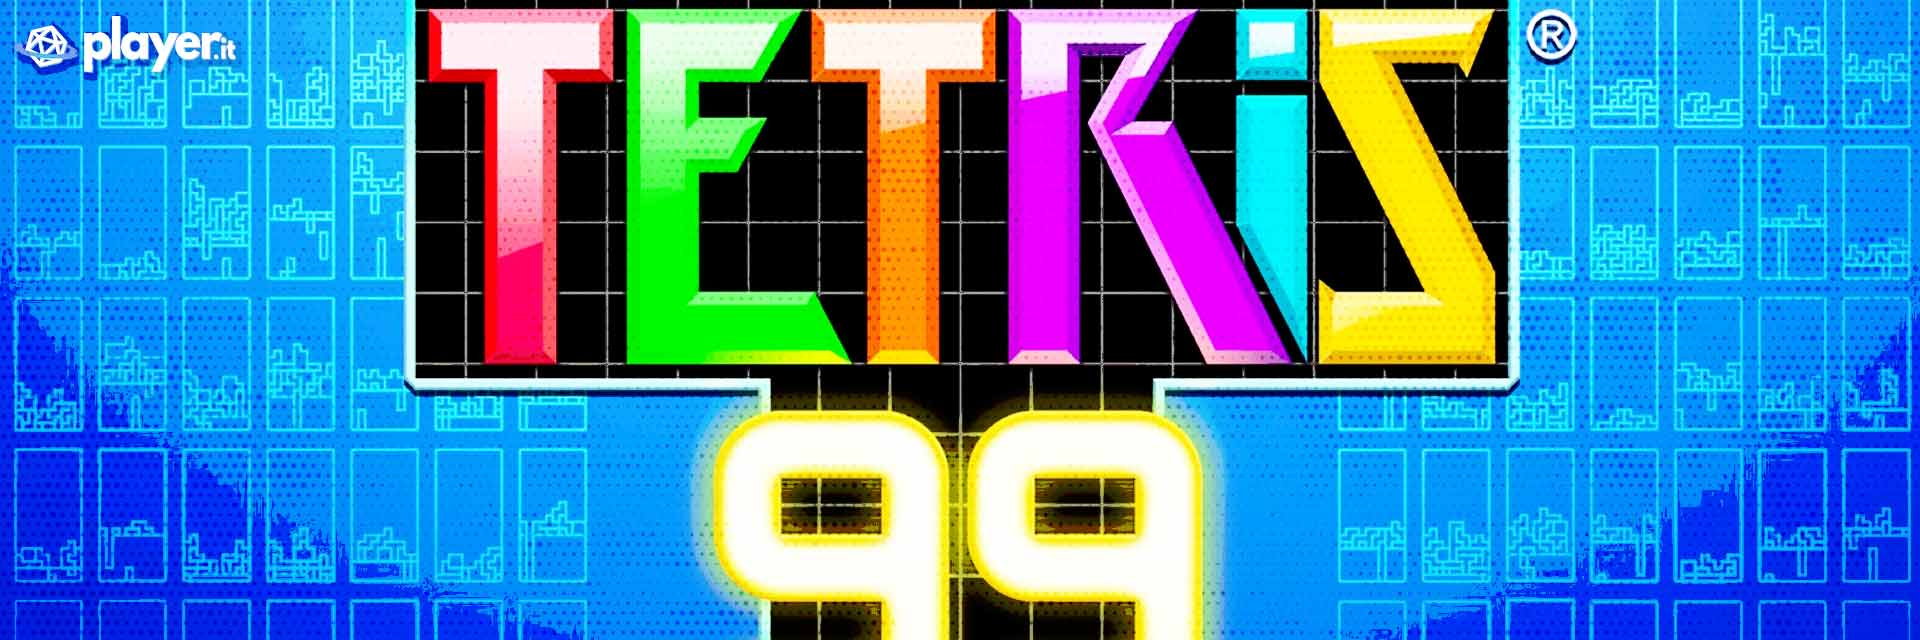 tetris 99 wallpaper in hd